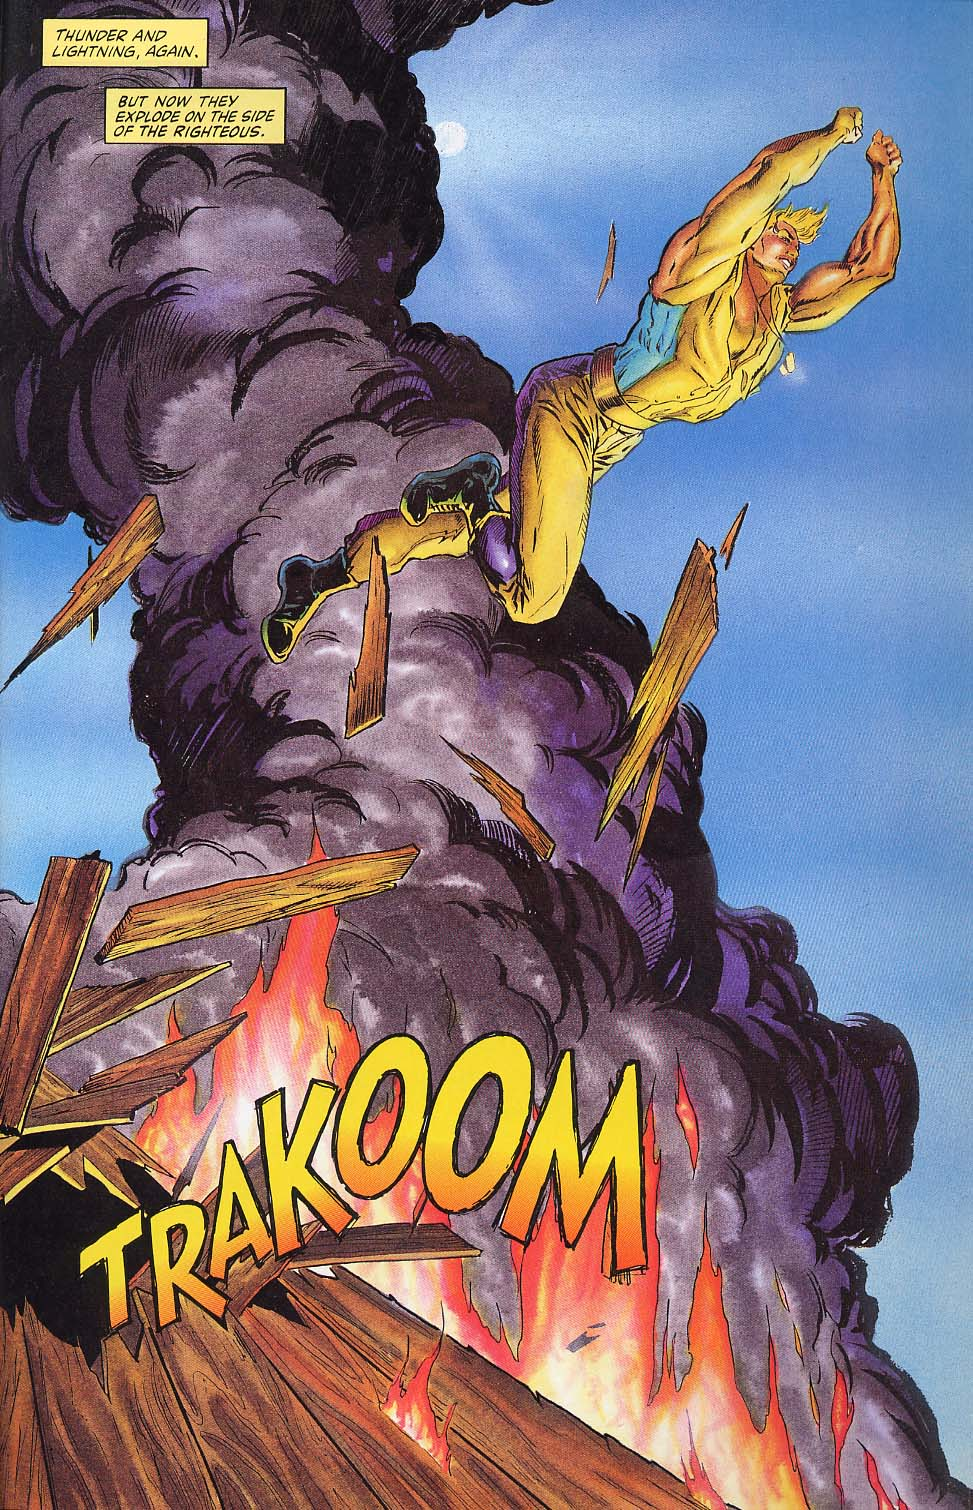 Read online Charlemagne comic -  Issue #1 - 37